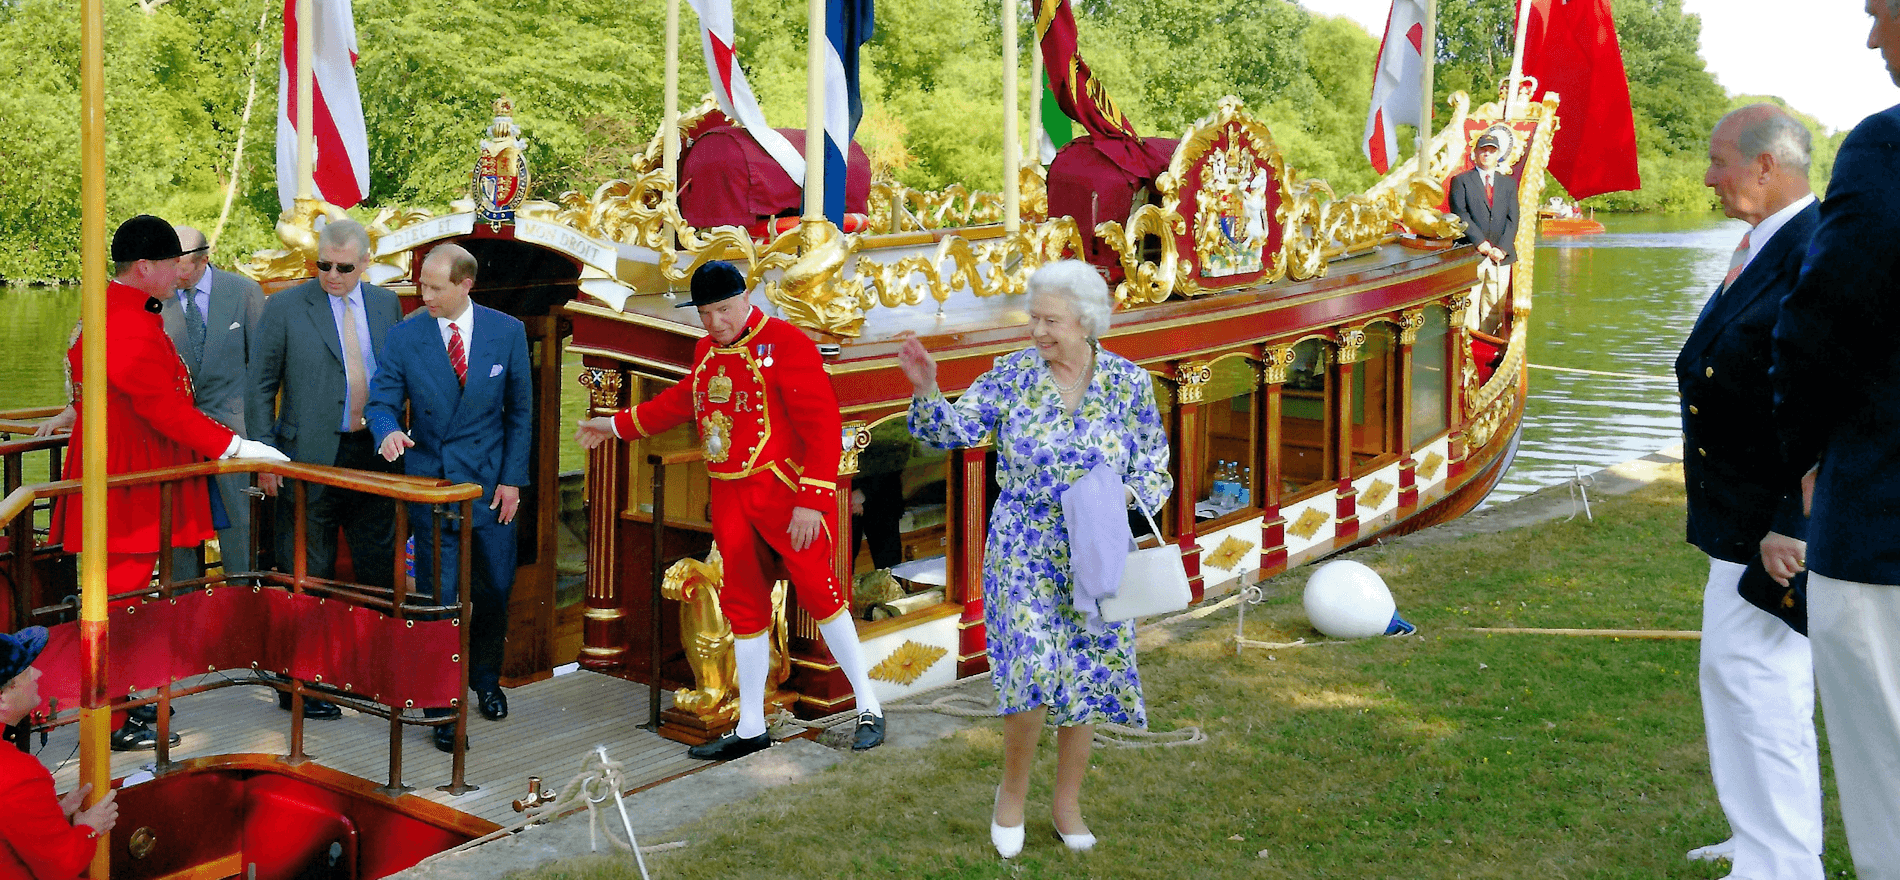 Her Majesty The Queen disembarking from Gloriana